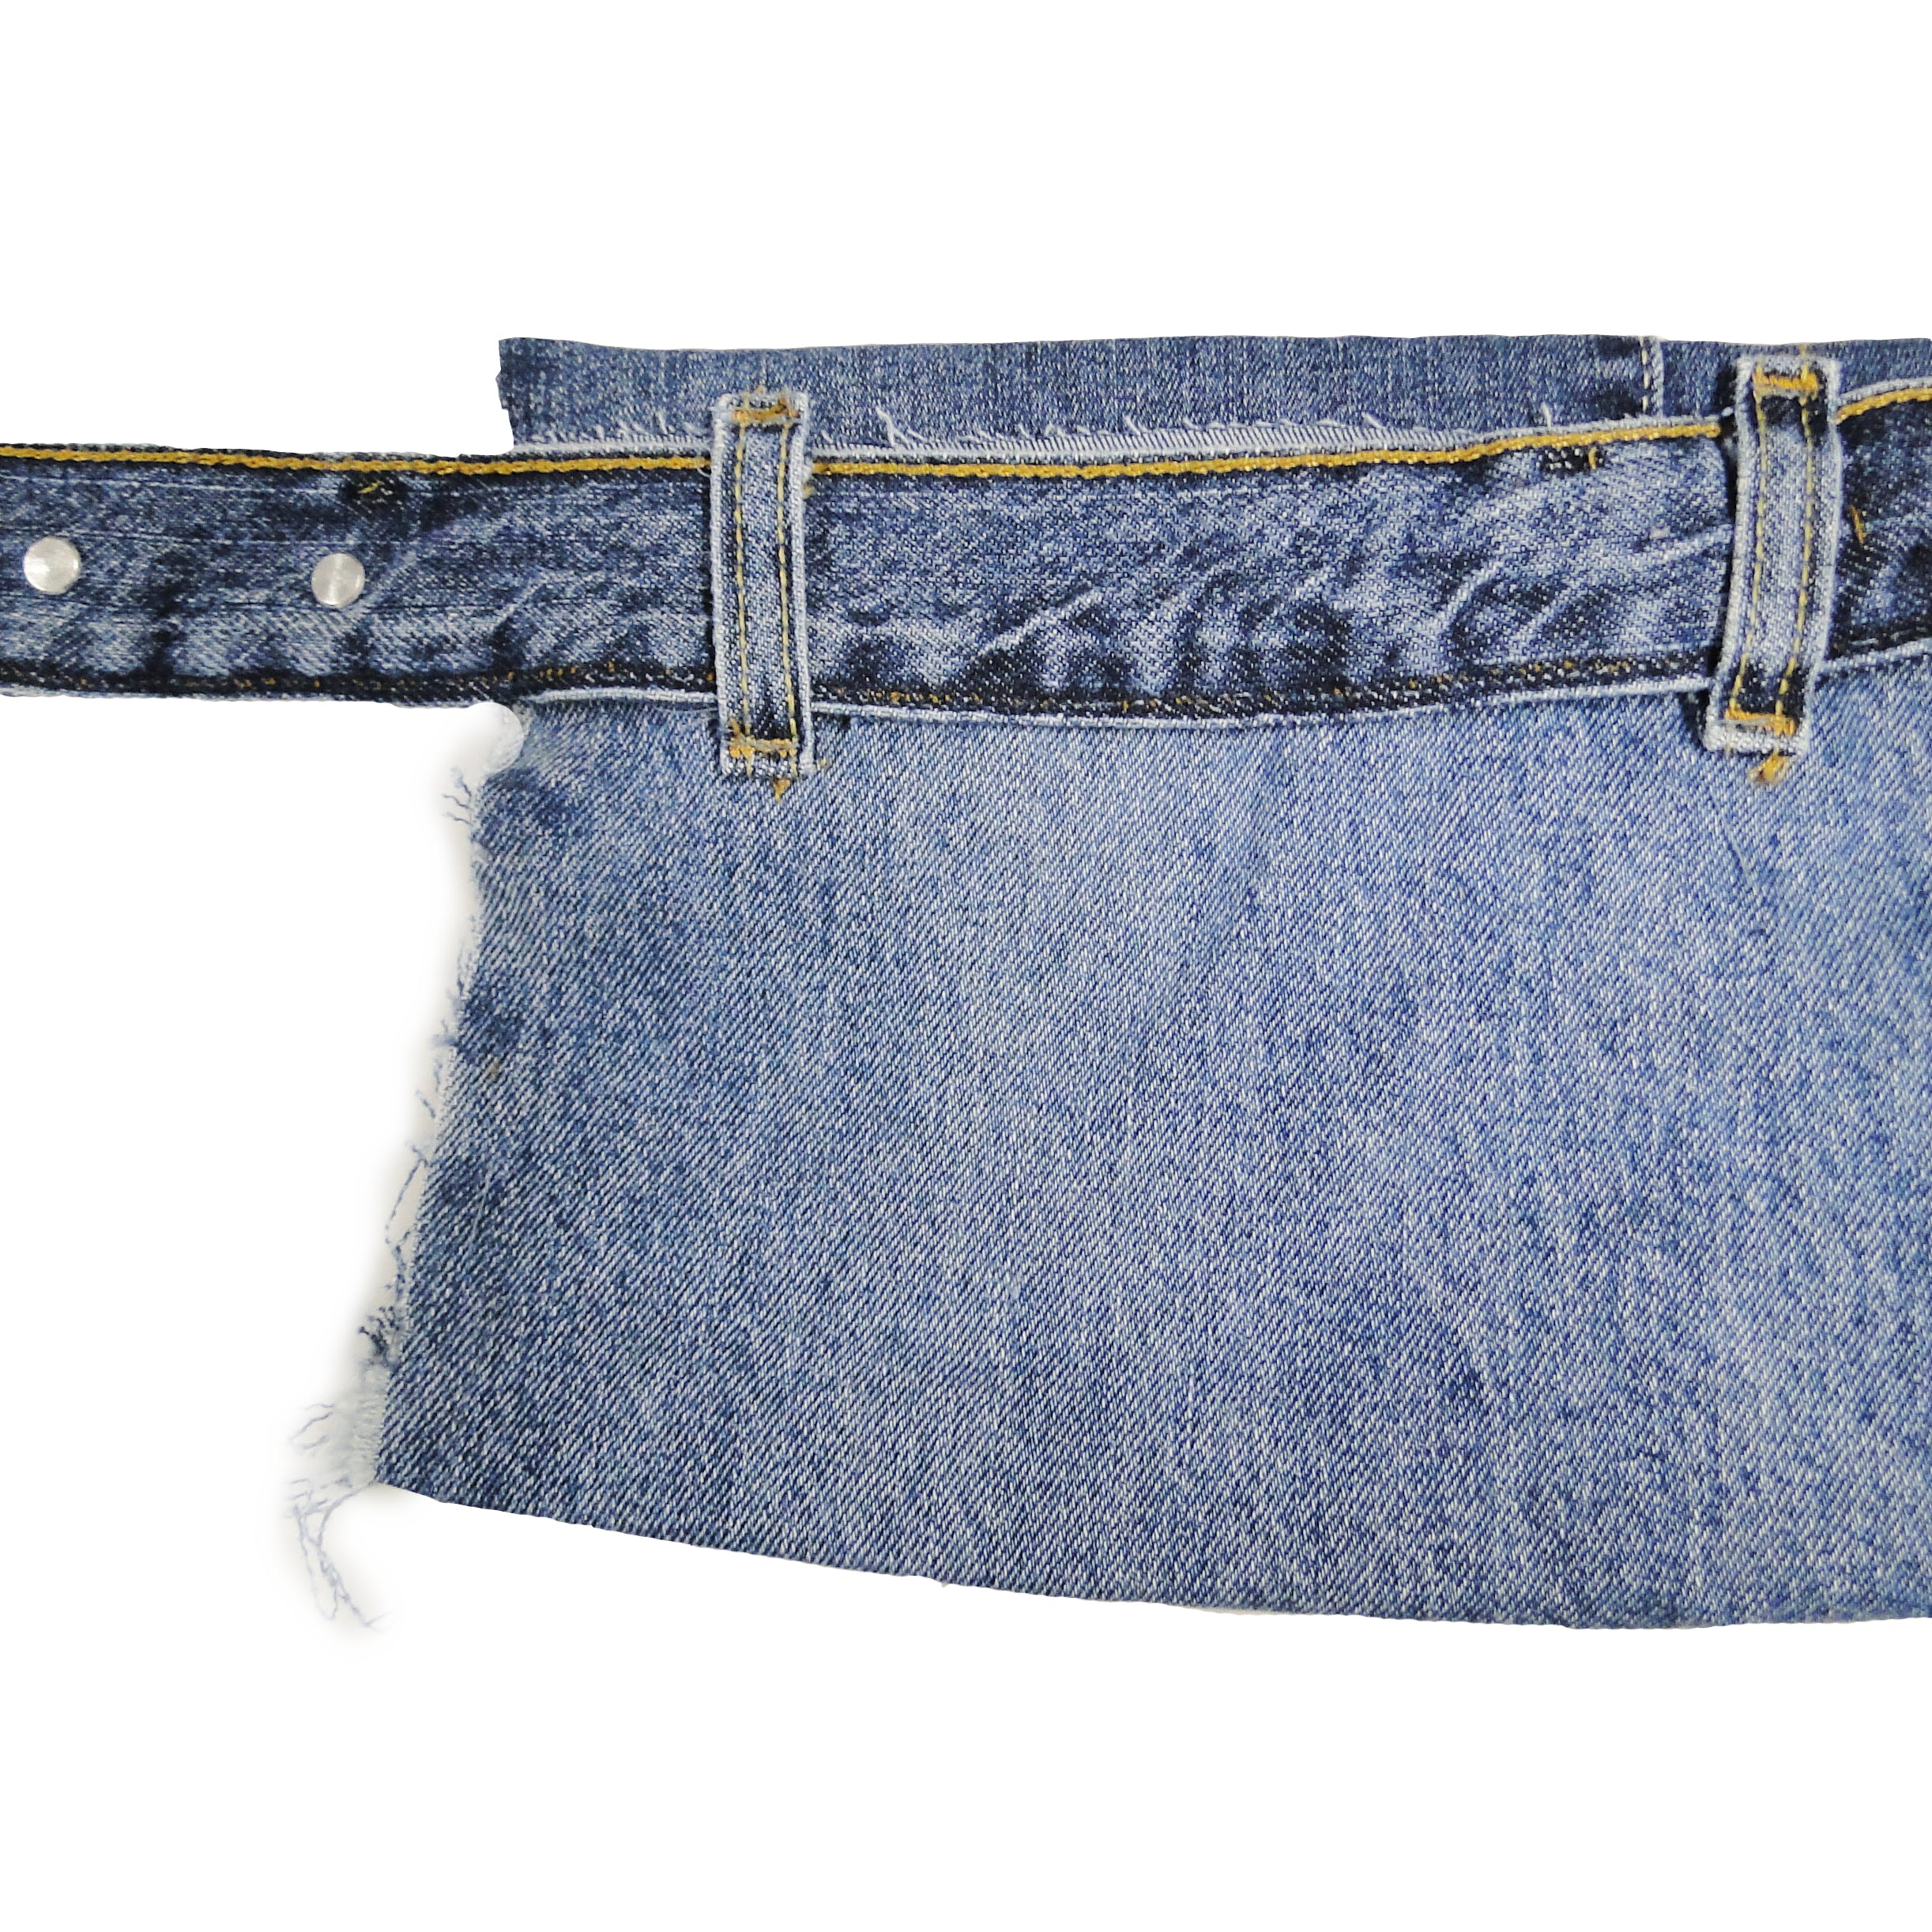 upcycled, reversible, sustainable denim fanny pack